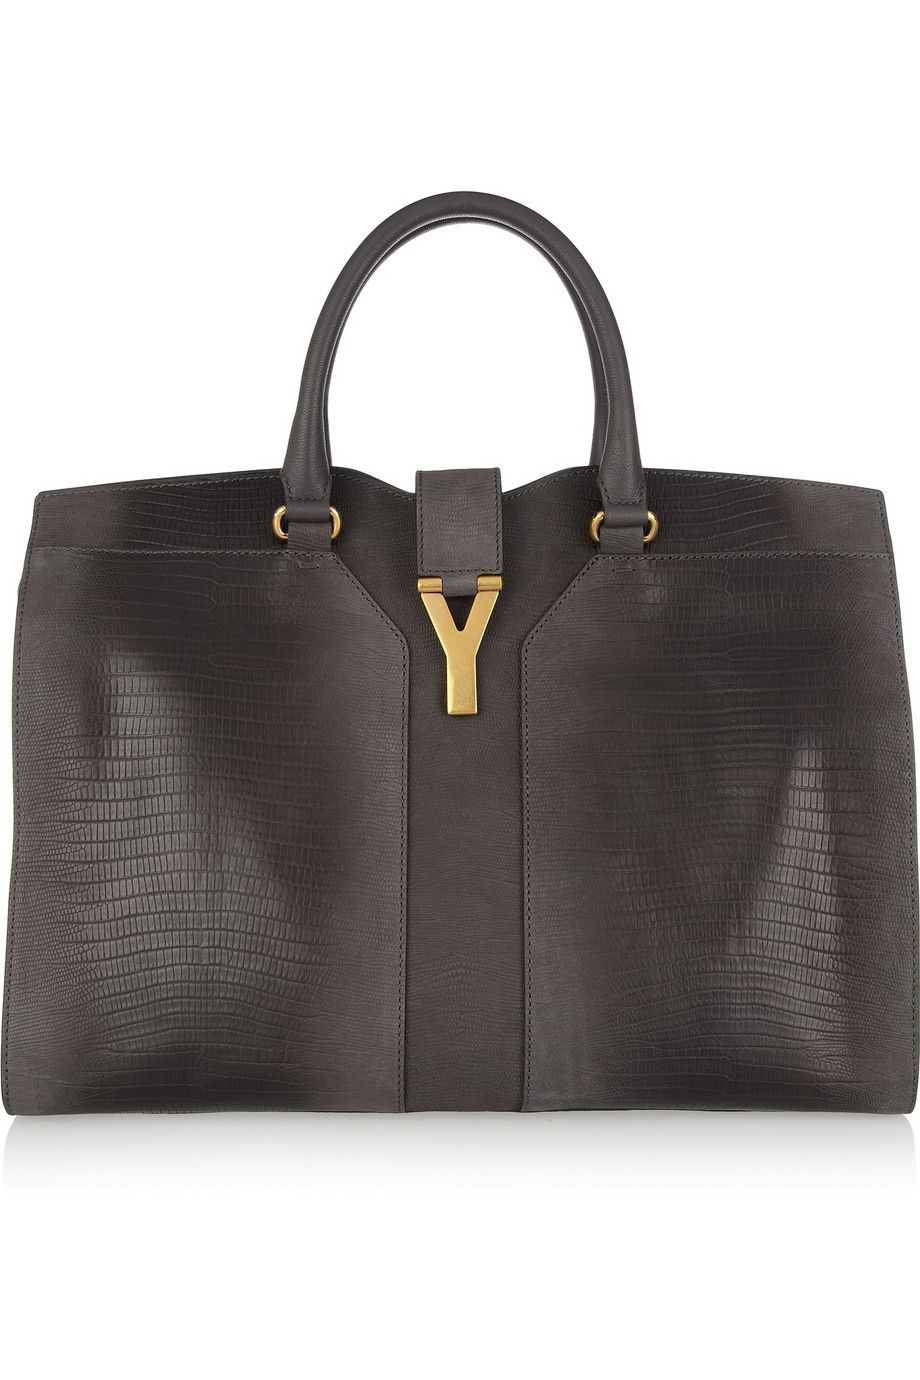 3e871fdf62aa Yves Saint Laurent - Cabas Chyc lizard-effect leather tote